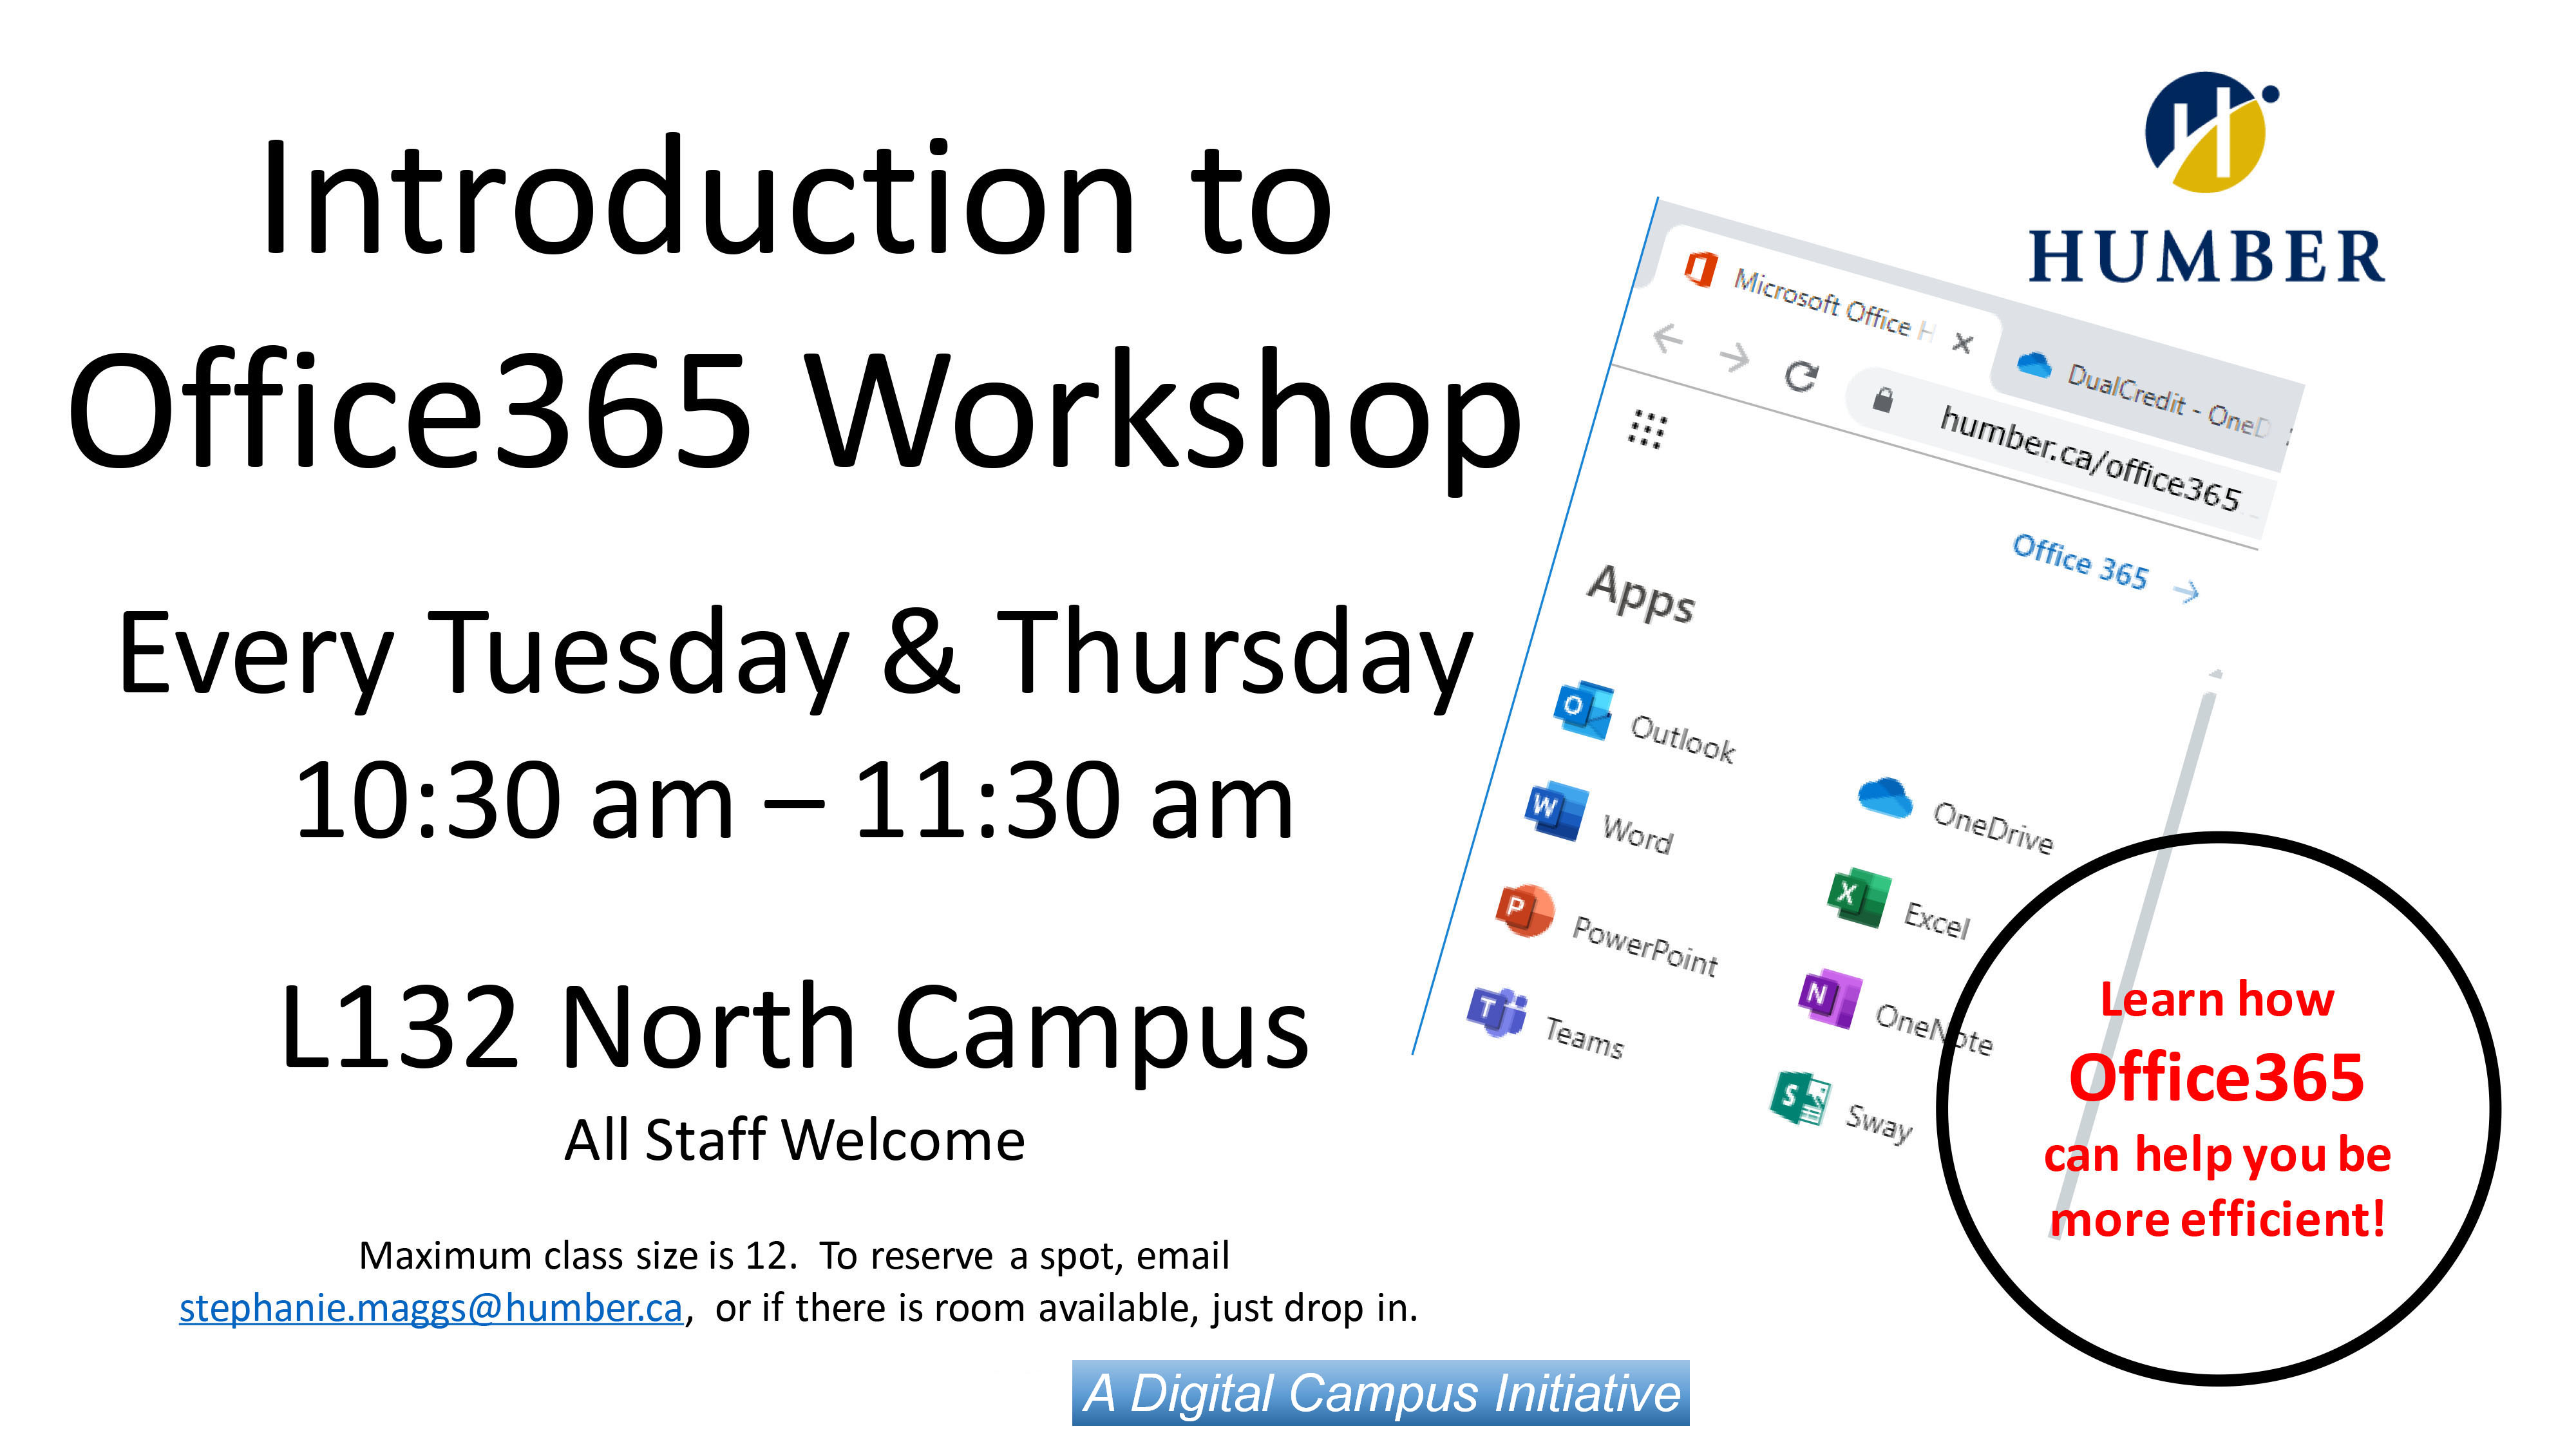 Introduction to Office365 Workshop